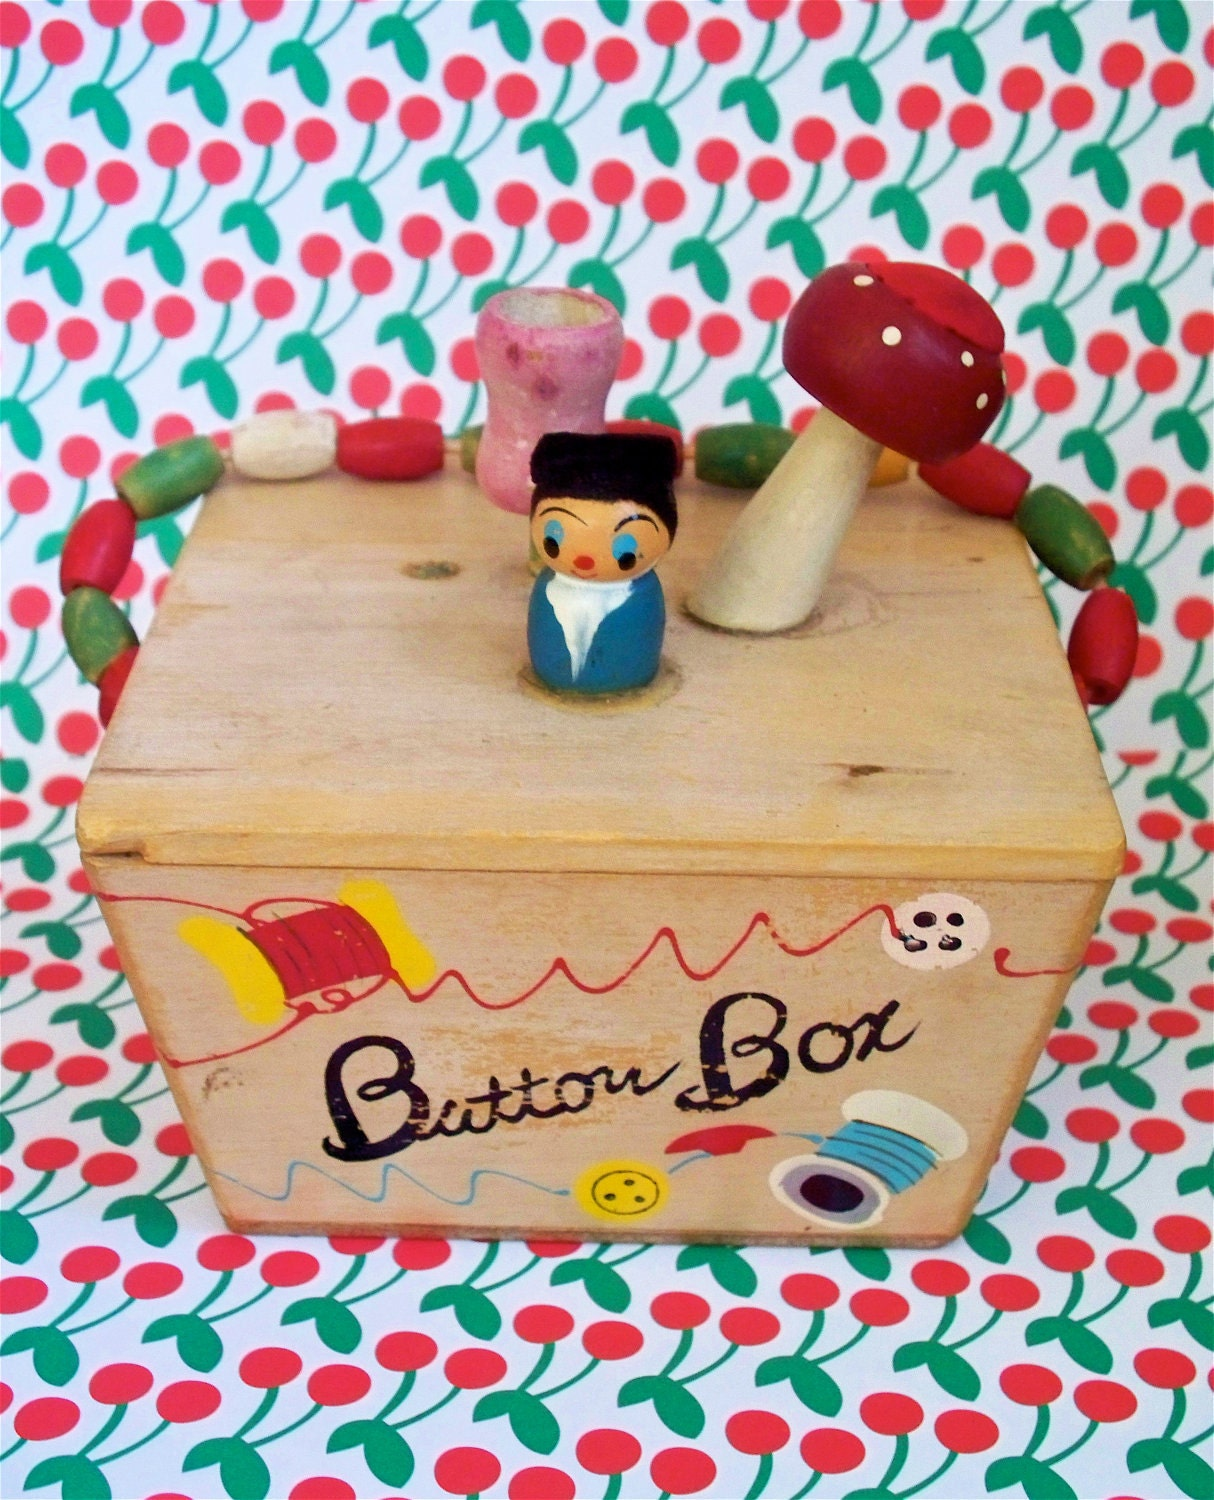 Vintage Kitsch Wood Painted Button Box with Gnome and Mushroom  Beaded Handle  Includes vintage Buttons